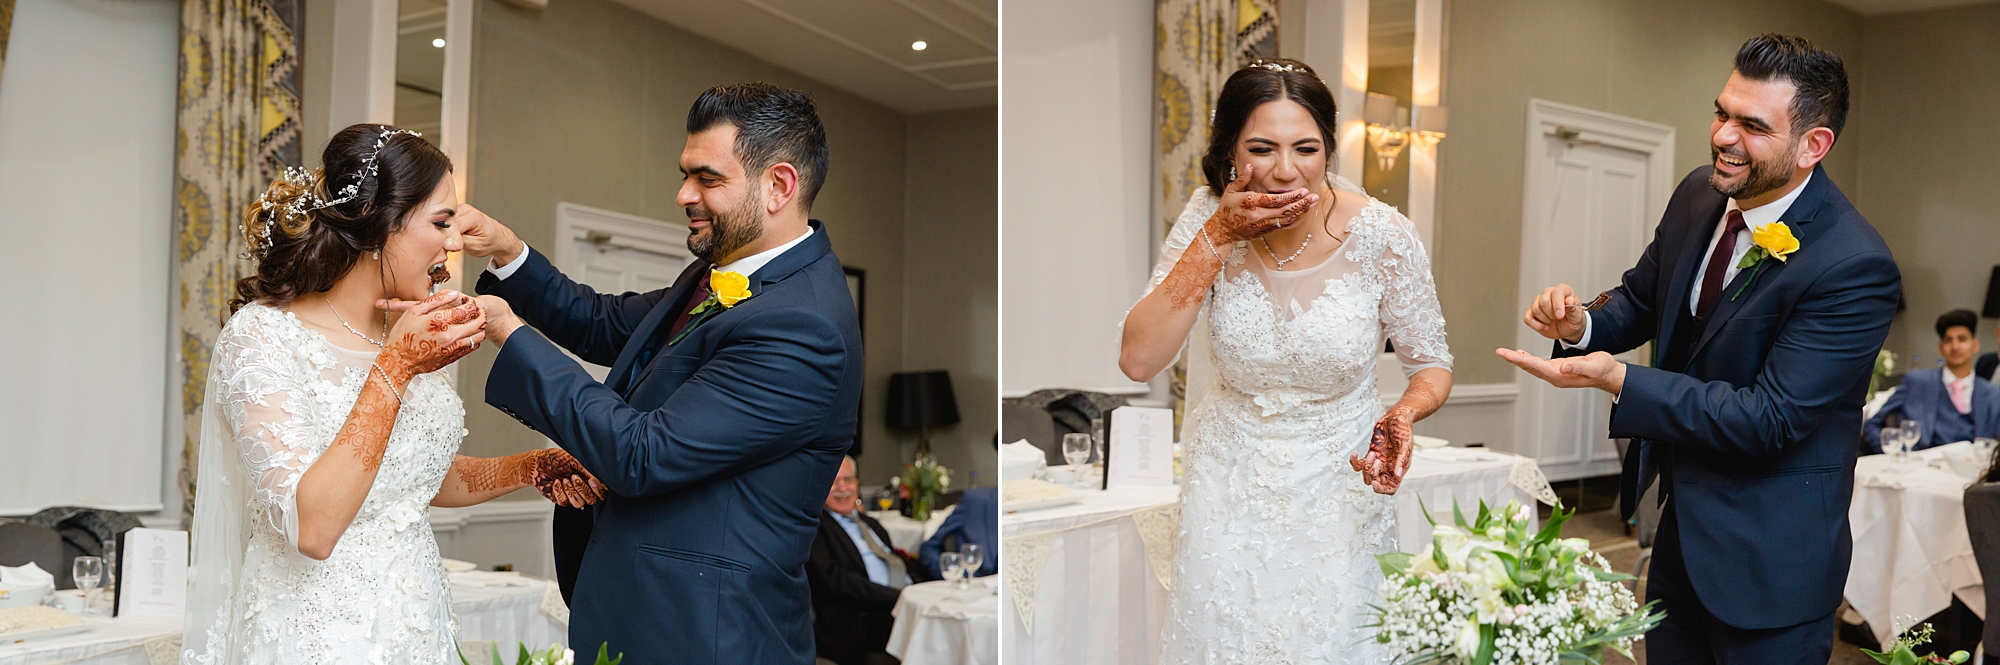 Richmond Hill Hotel wedding funny portrait of bride and groom parting wedding cake